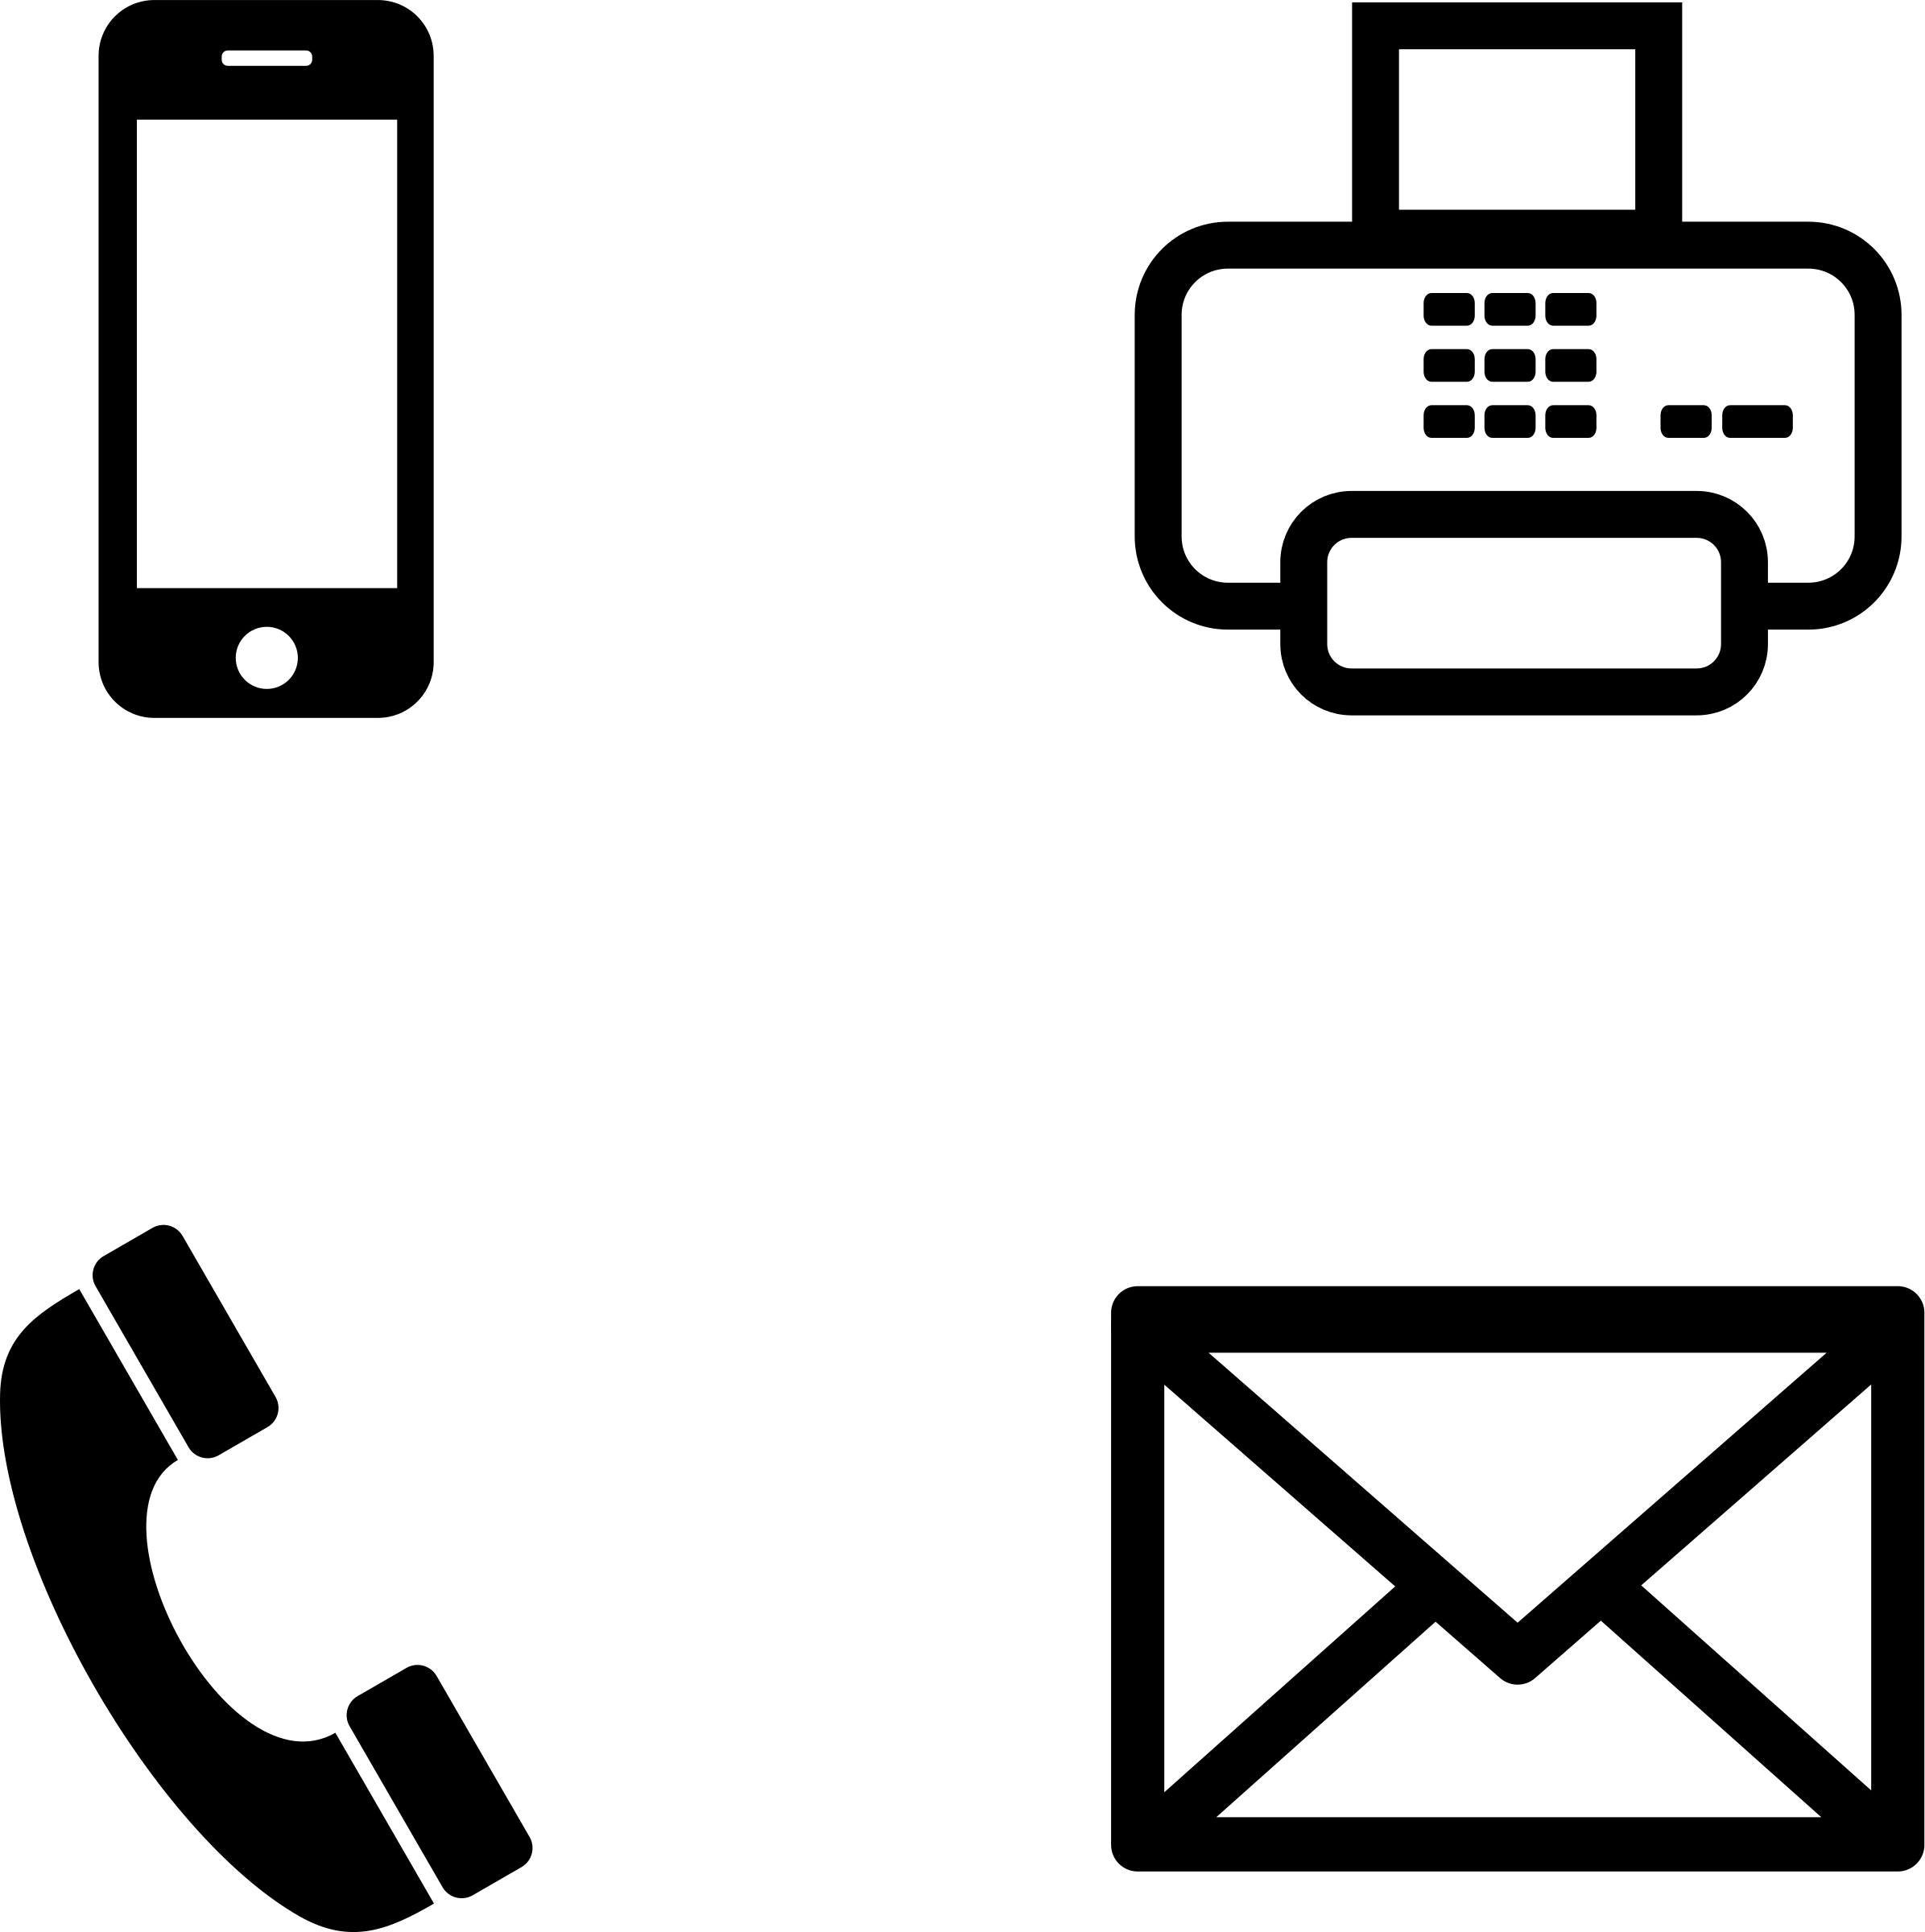 telephone clipart telephone icon